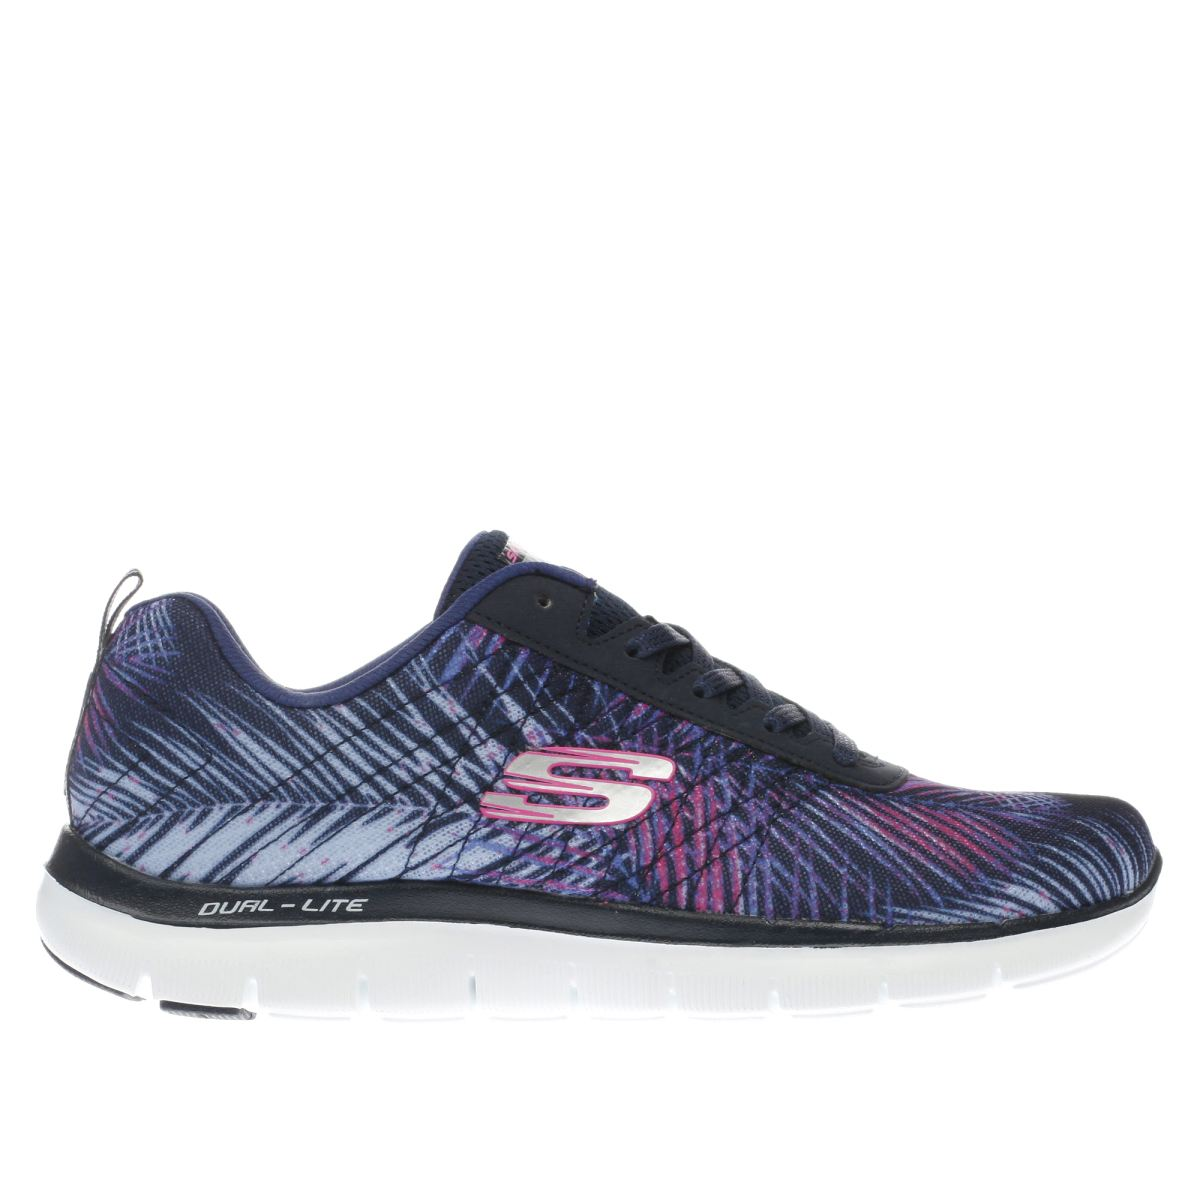 skechers navy & white flex appeal 2.0 tropical trainers